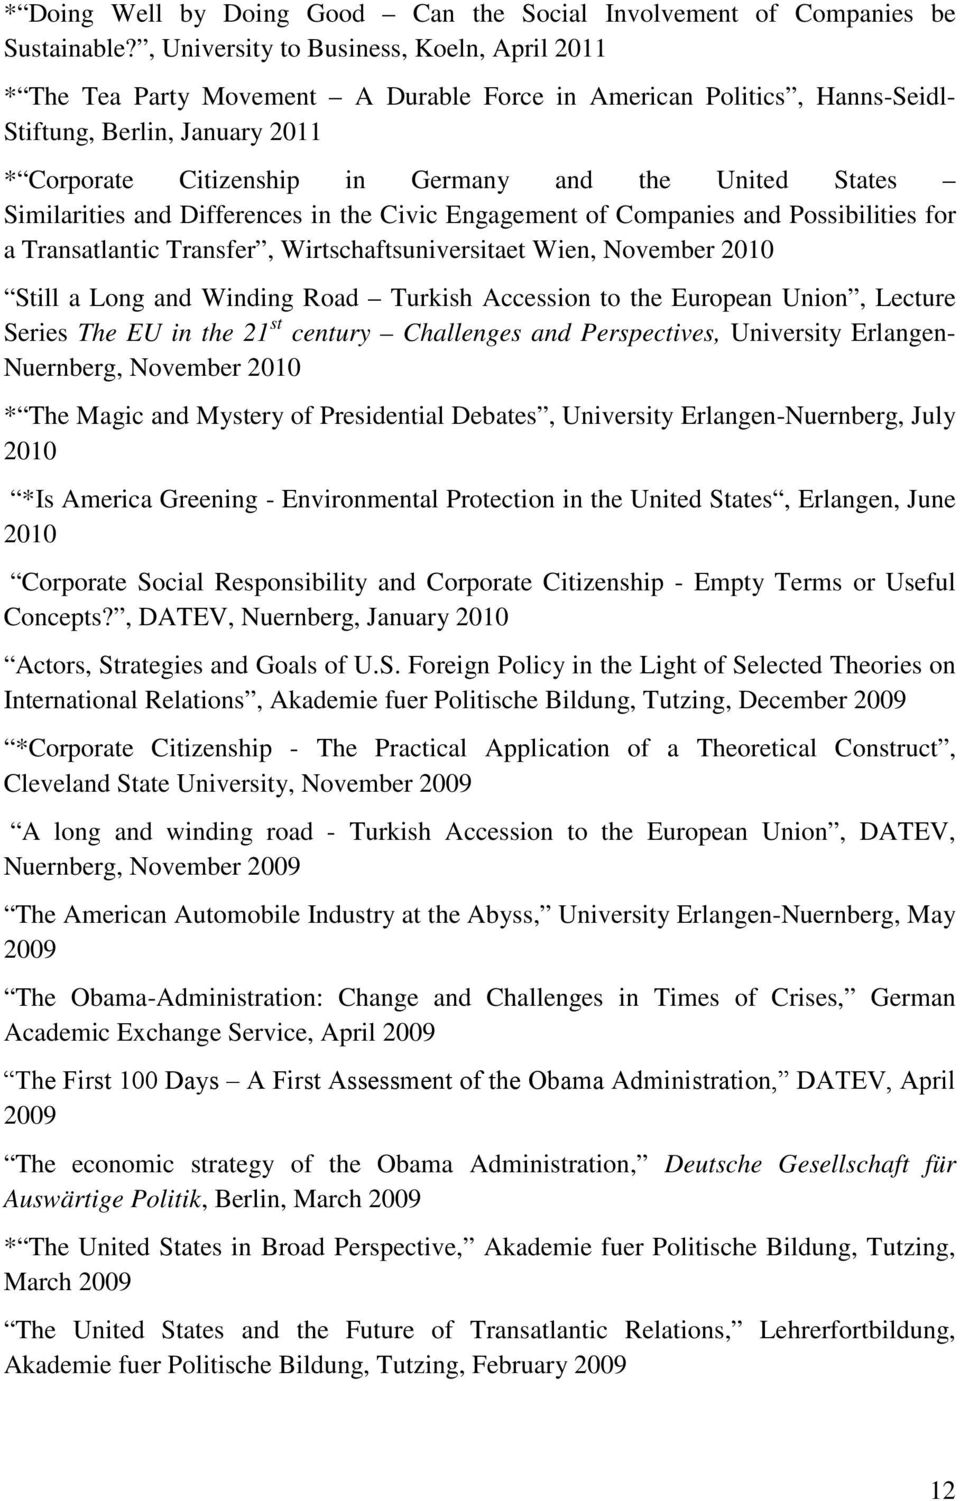 United States Similarities and Differences in the Civic Engagement of Companies and Possibilities for a Transatlantic Transfer, Wirtschaftsuniversitaet Wien, November 2010 Still a Long and Winding